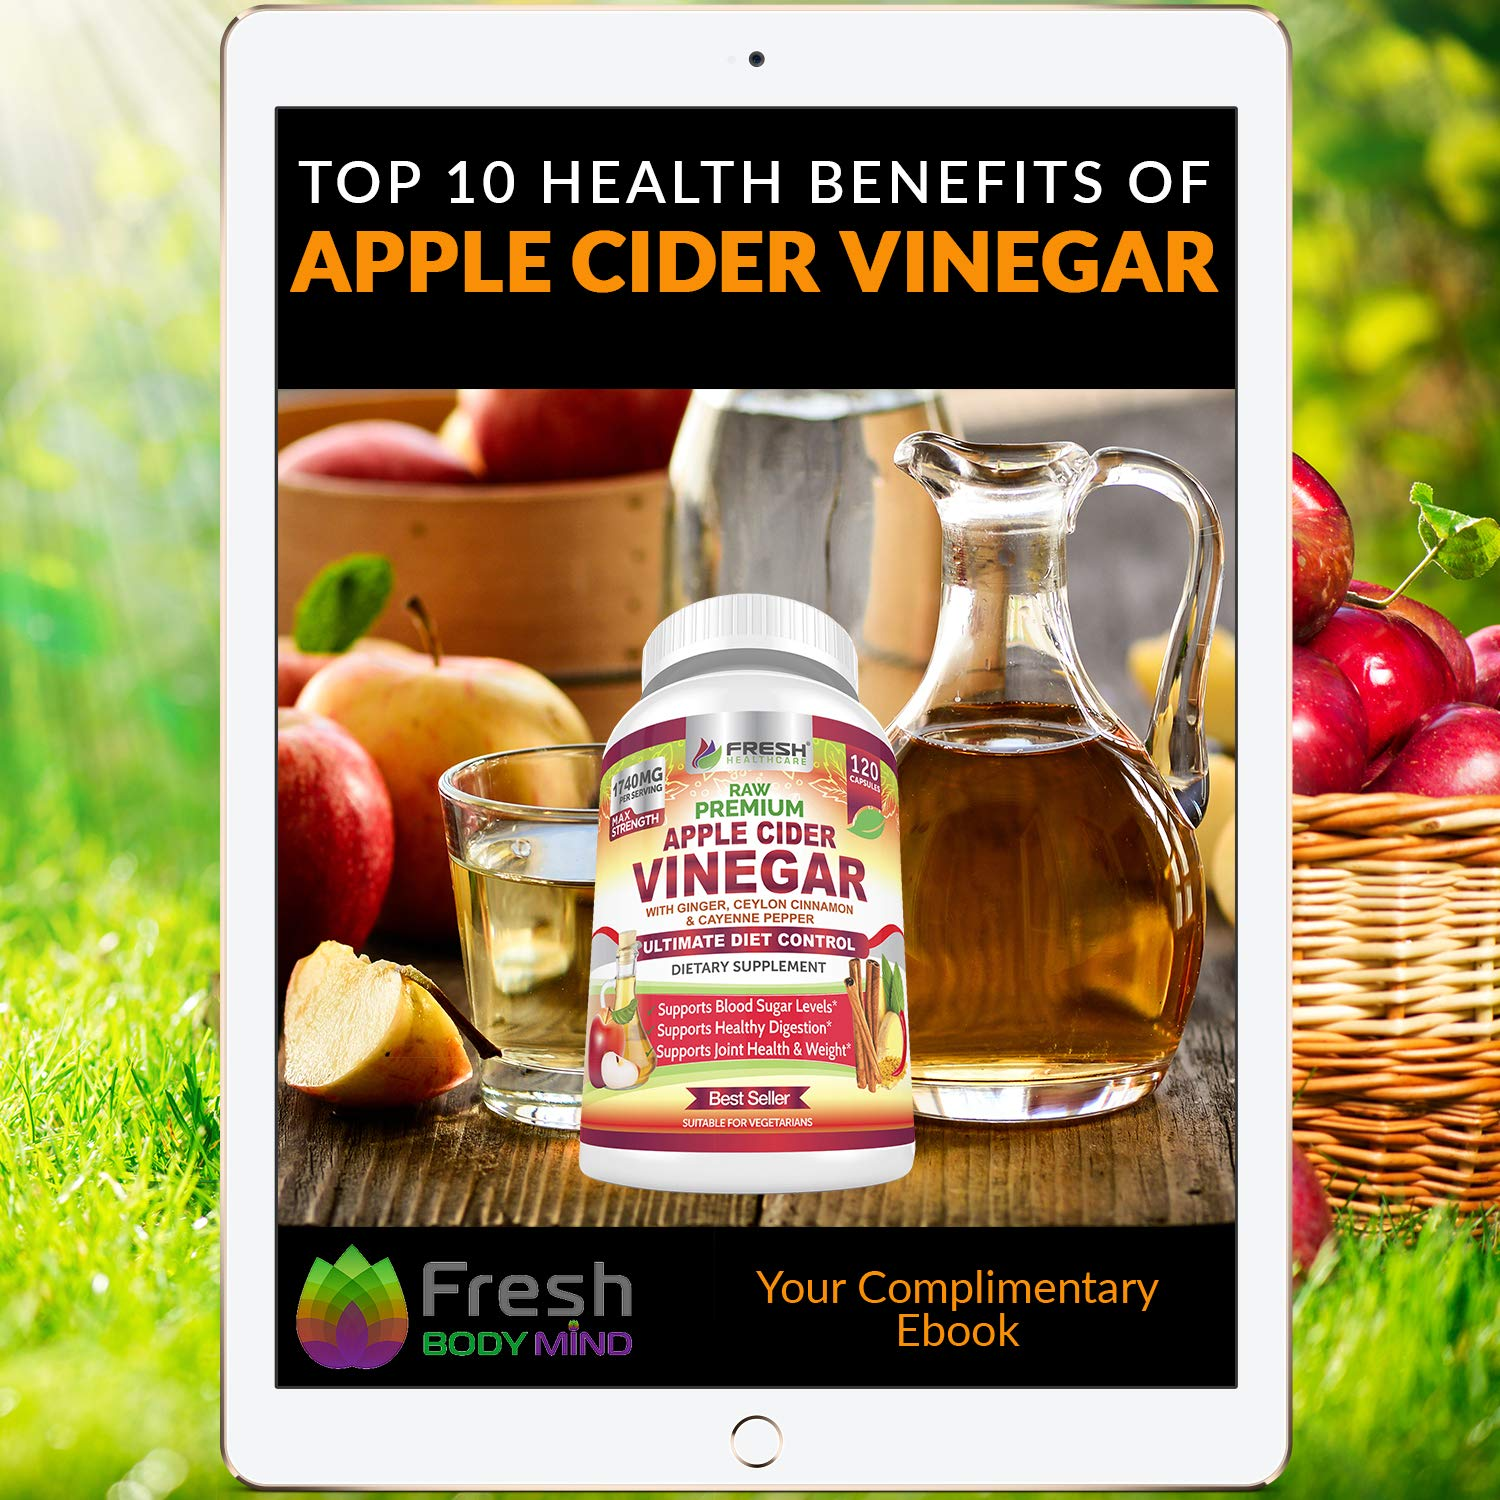 Organic Apple Cider Vinegar Pills Max 1740mg with Mother - 100% Natural & Raw with Ceylon Cinnamon, Ginger & Cayenne Pepper - Ideal for Healthy Blood Sugar, Detox & Digestion-120 Vegan Capsules by FRESH HEALTHCARE (Image #4)